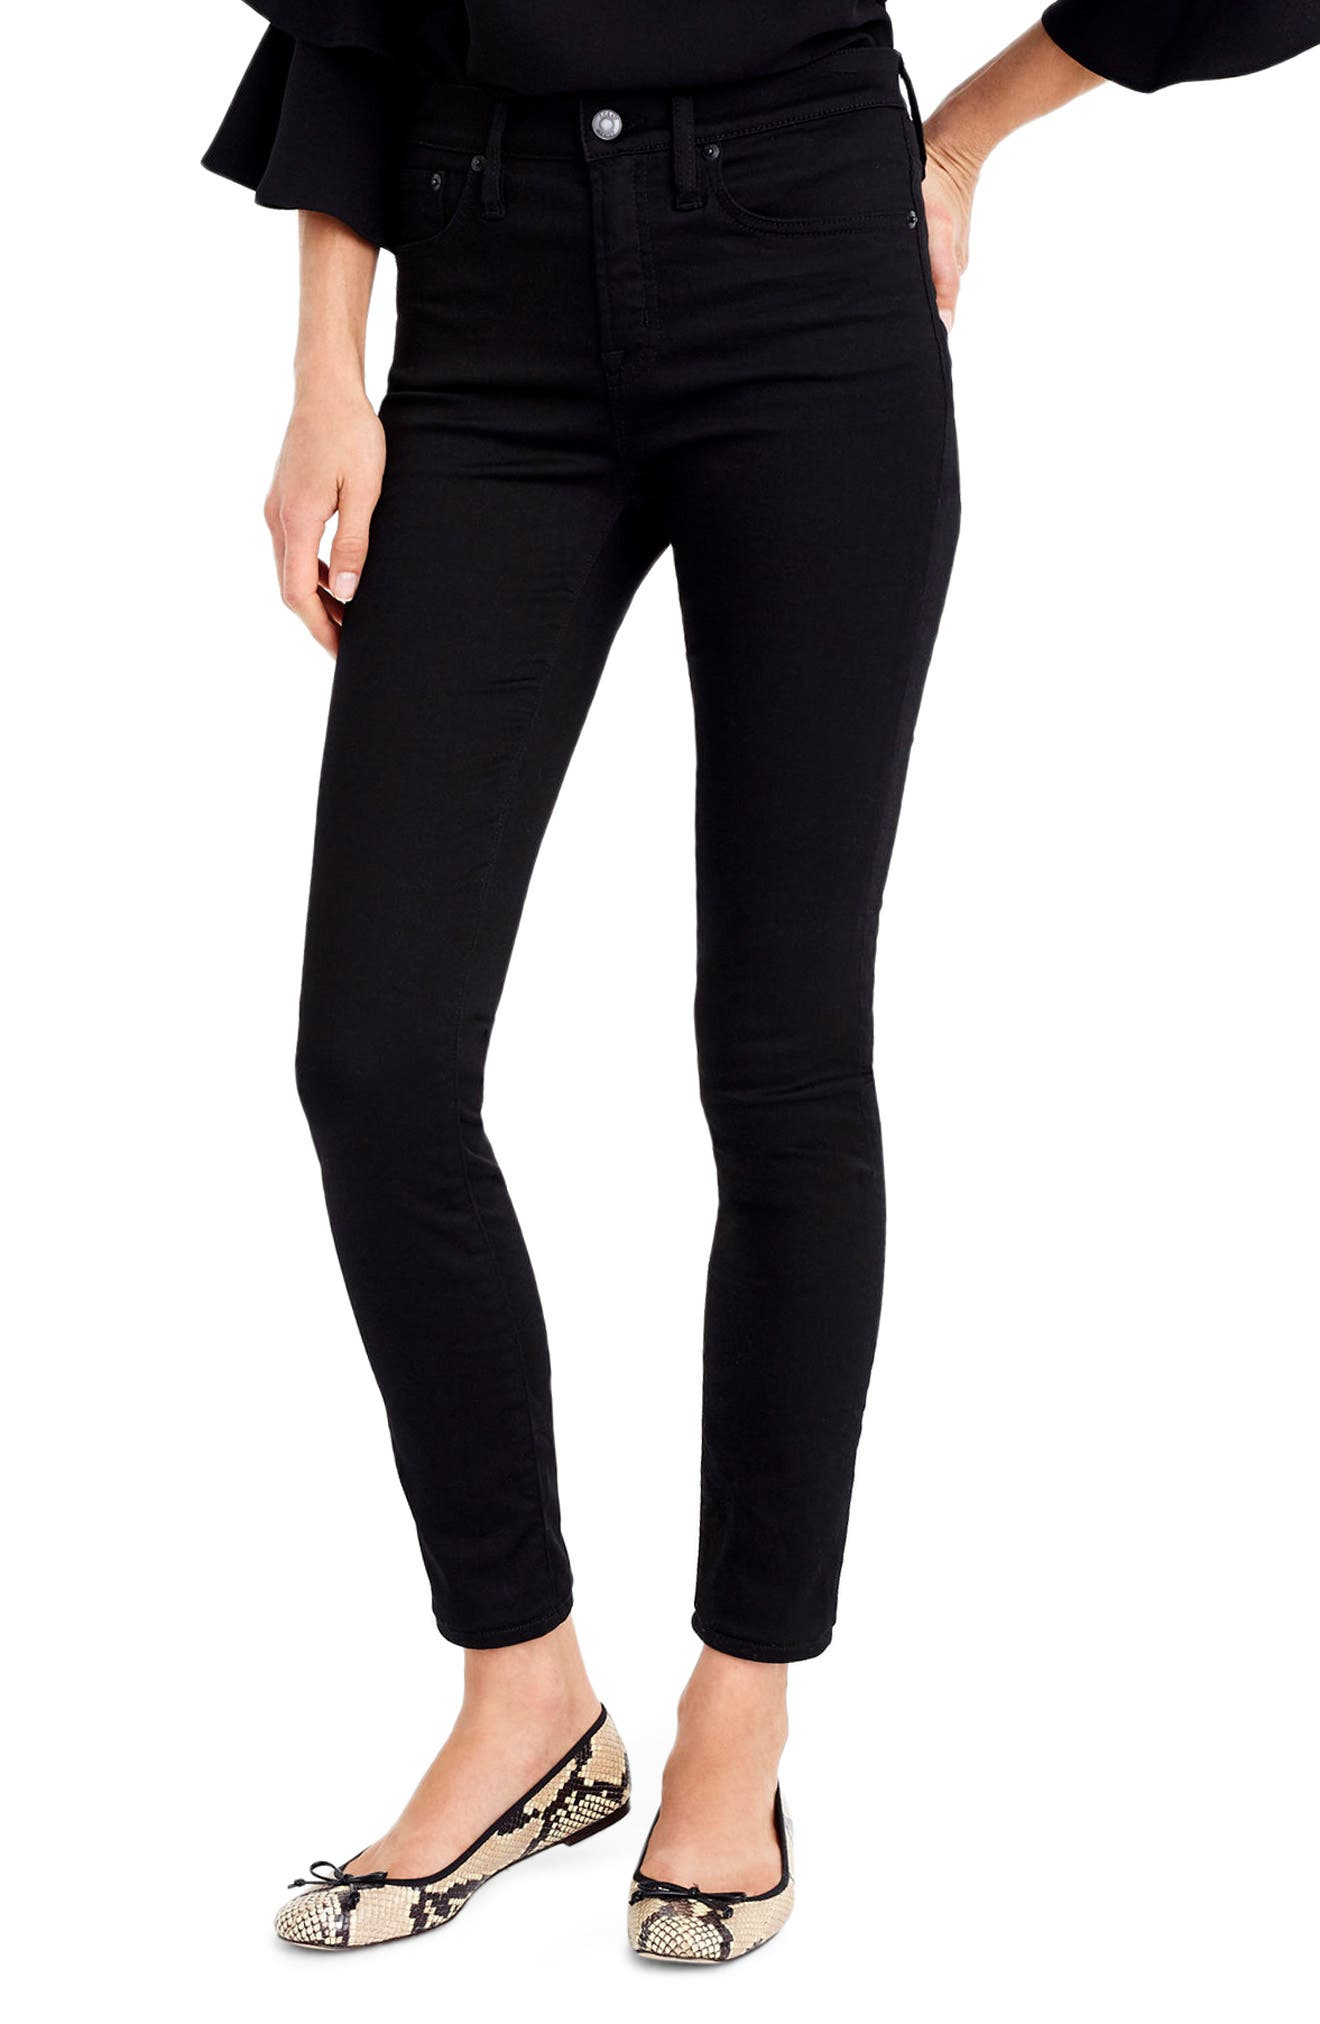 J.Crew Lookout High Rise Jeans